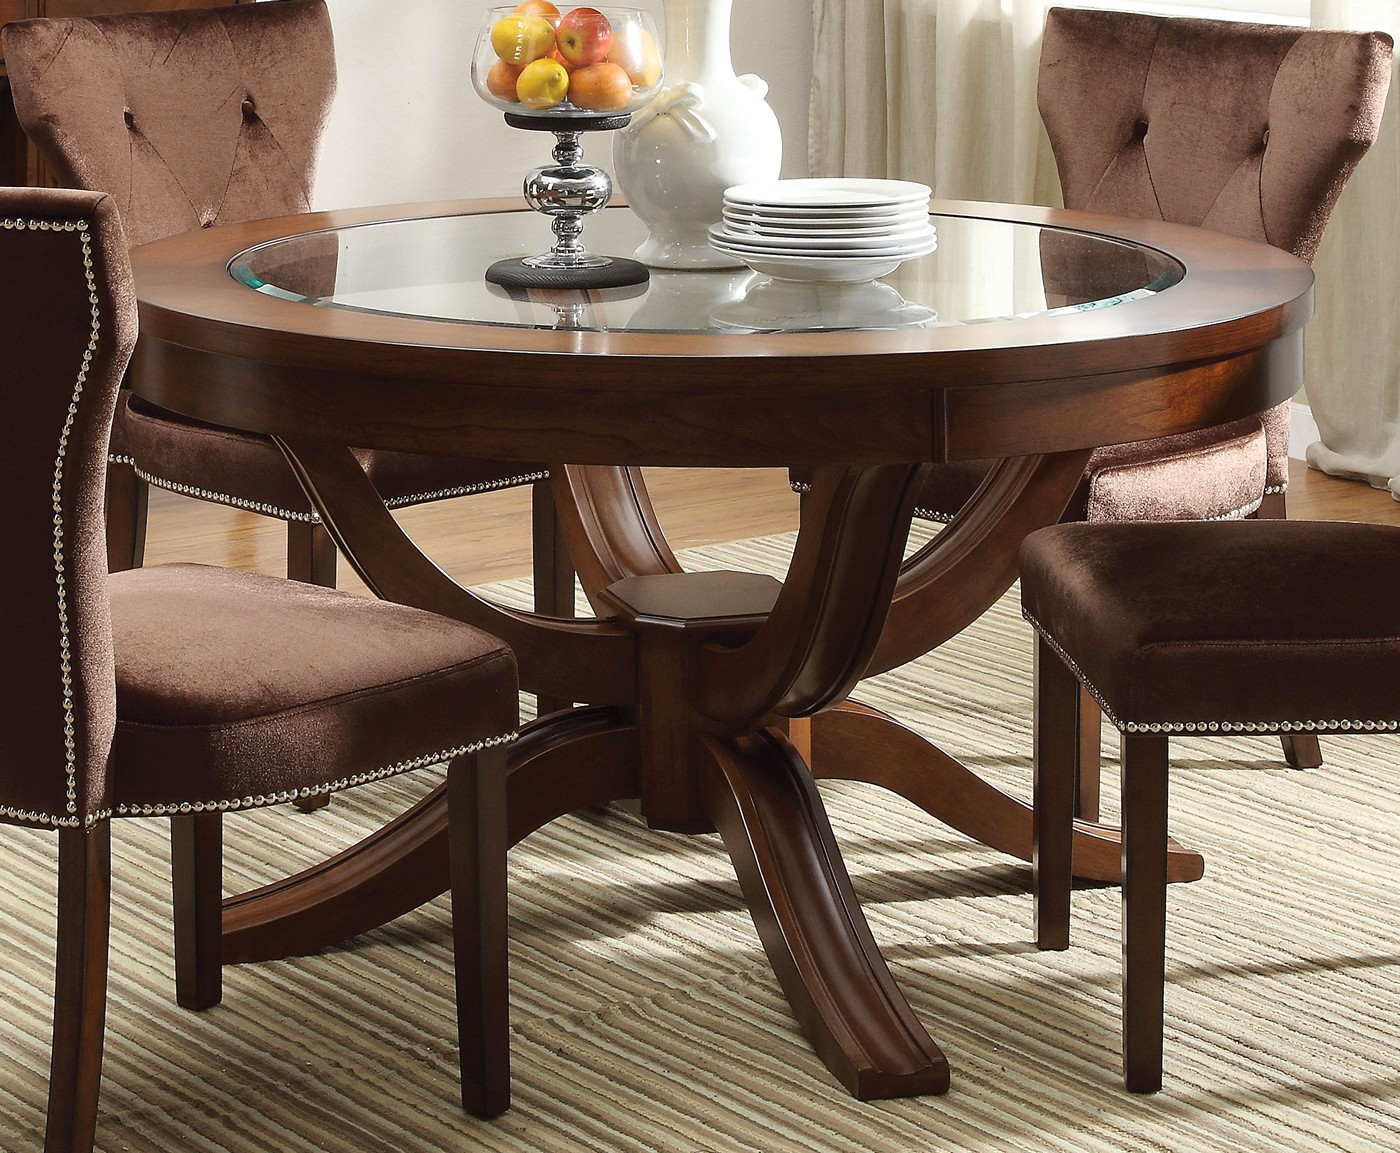 kayden transitional round 54 dining table w glass top in cherry finish. Black Bedroom Furniture Sets. Home Design Ideas